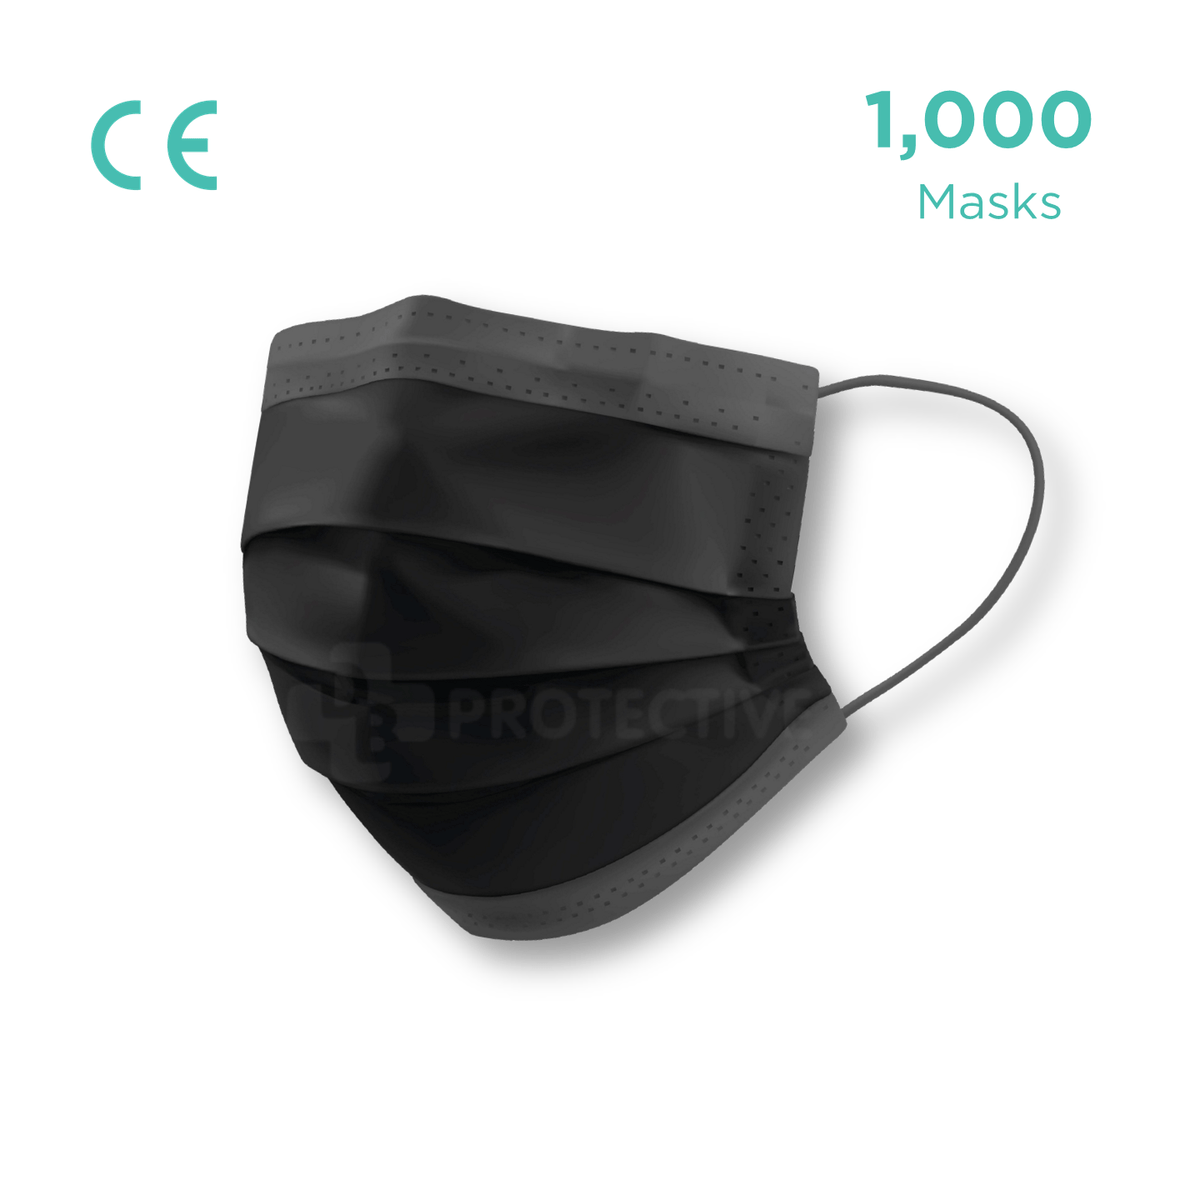 3-Ply Black Disposable Surgical Civil Face Mask (Level 1) - Pack of 1,000 - USA Medical Supply - DB Protective